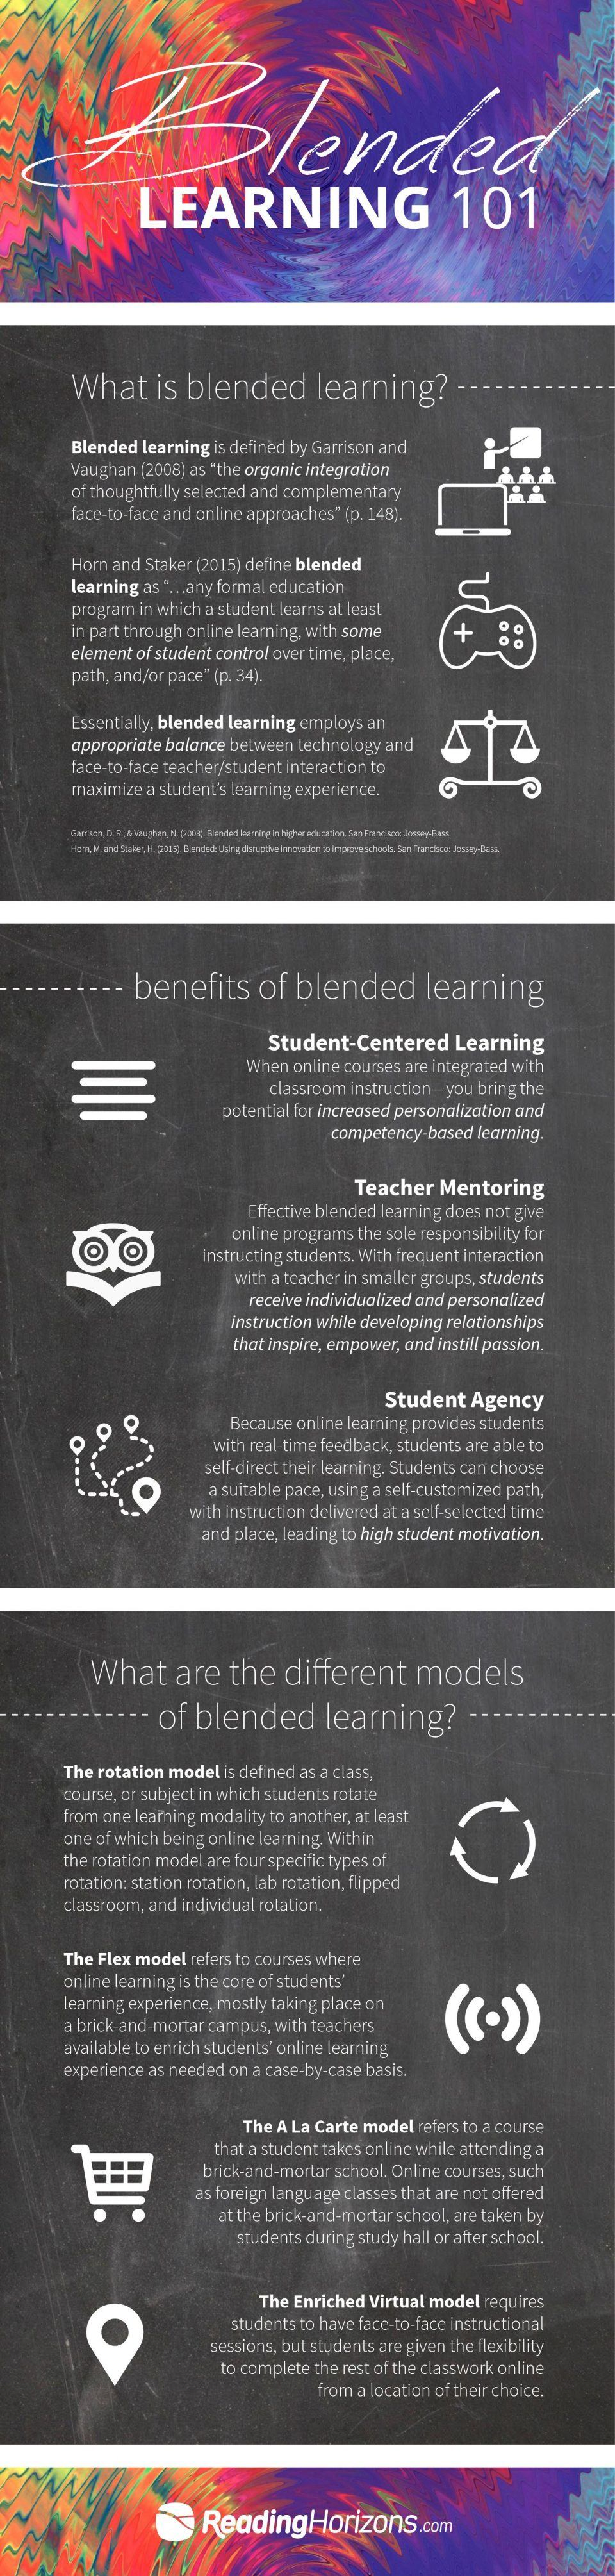 Blended Learning 101 Infographic